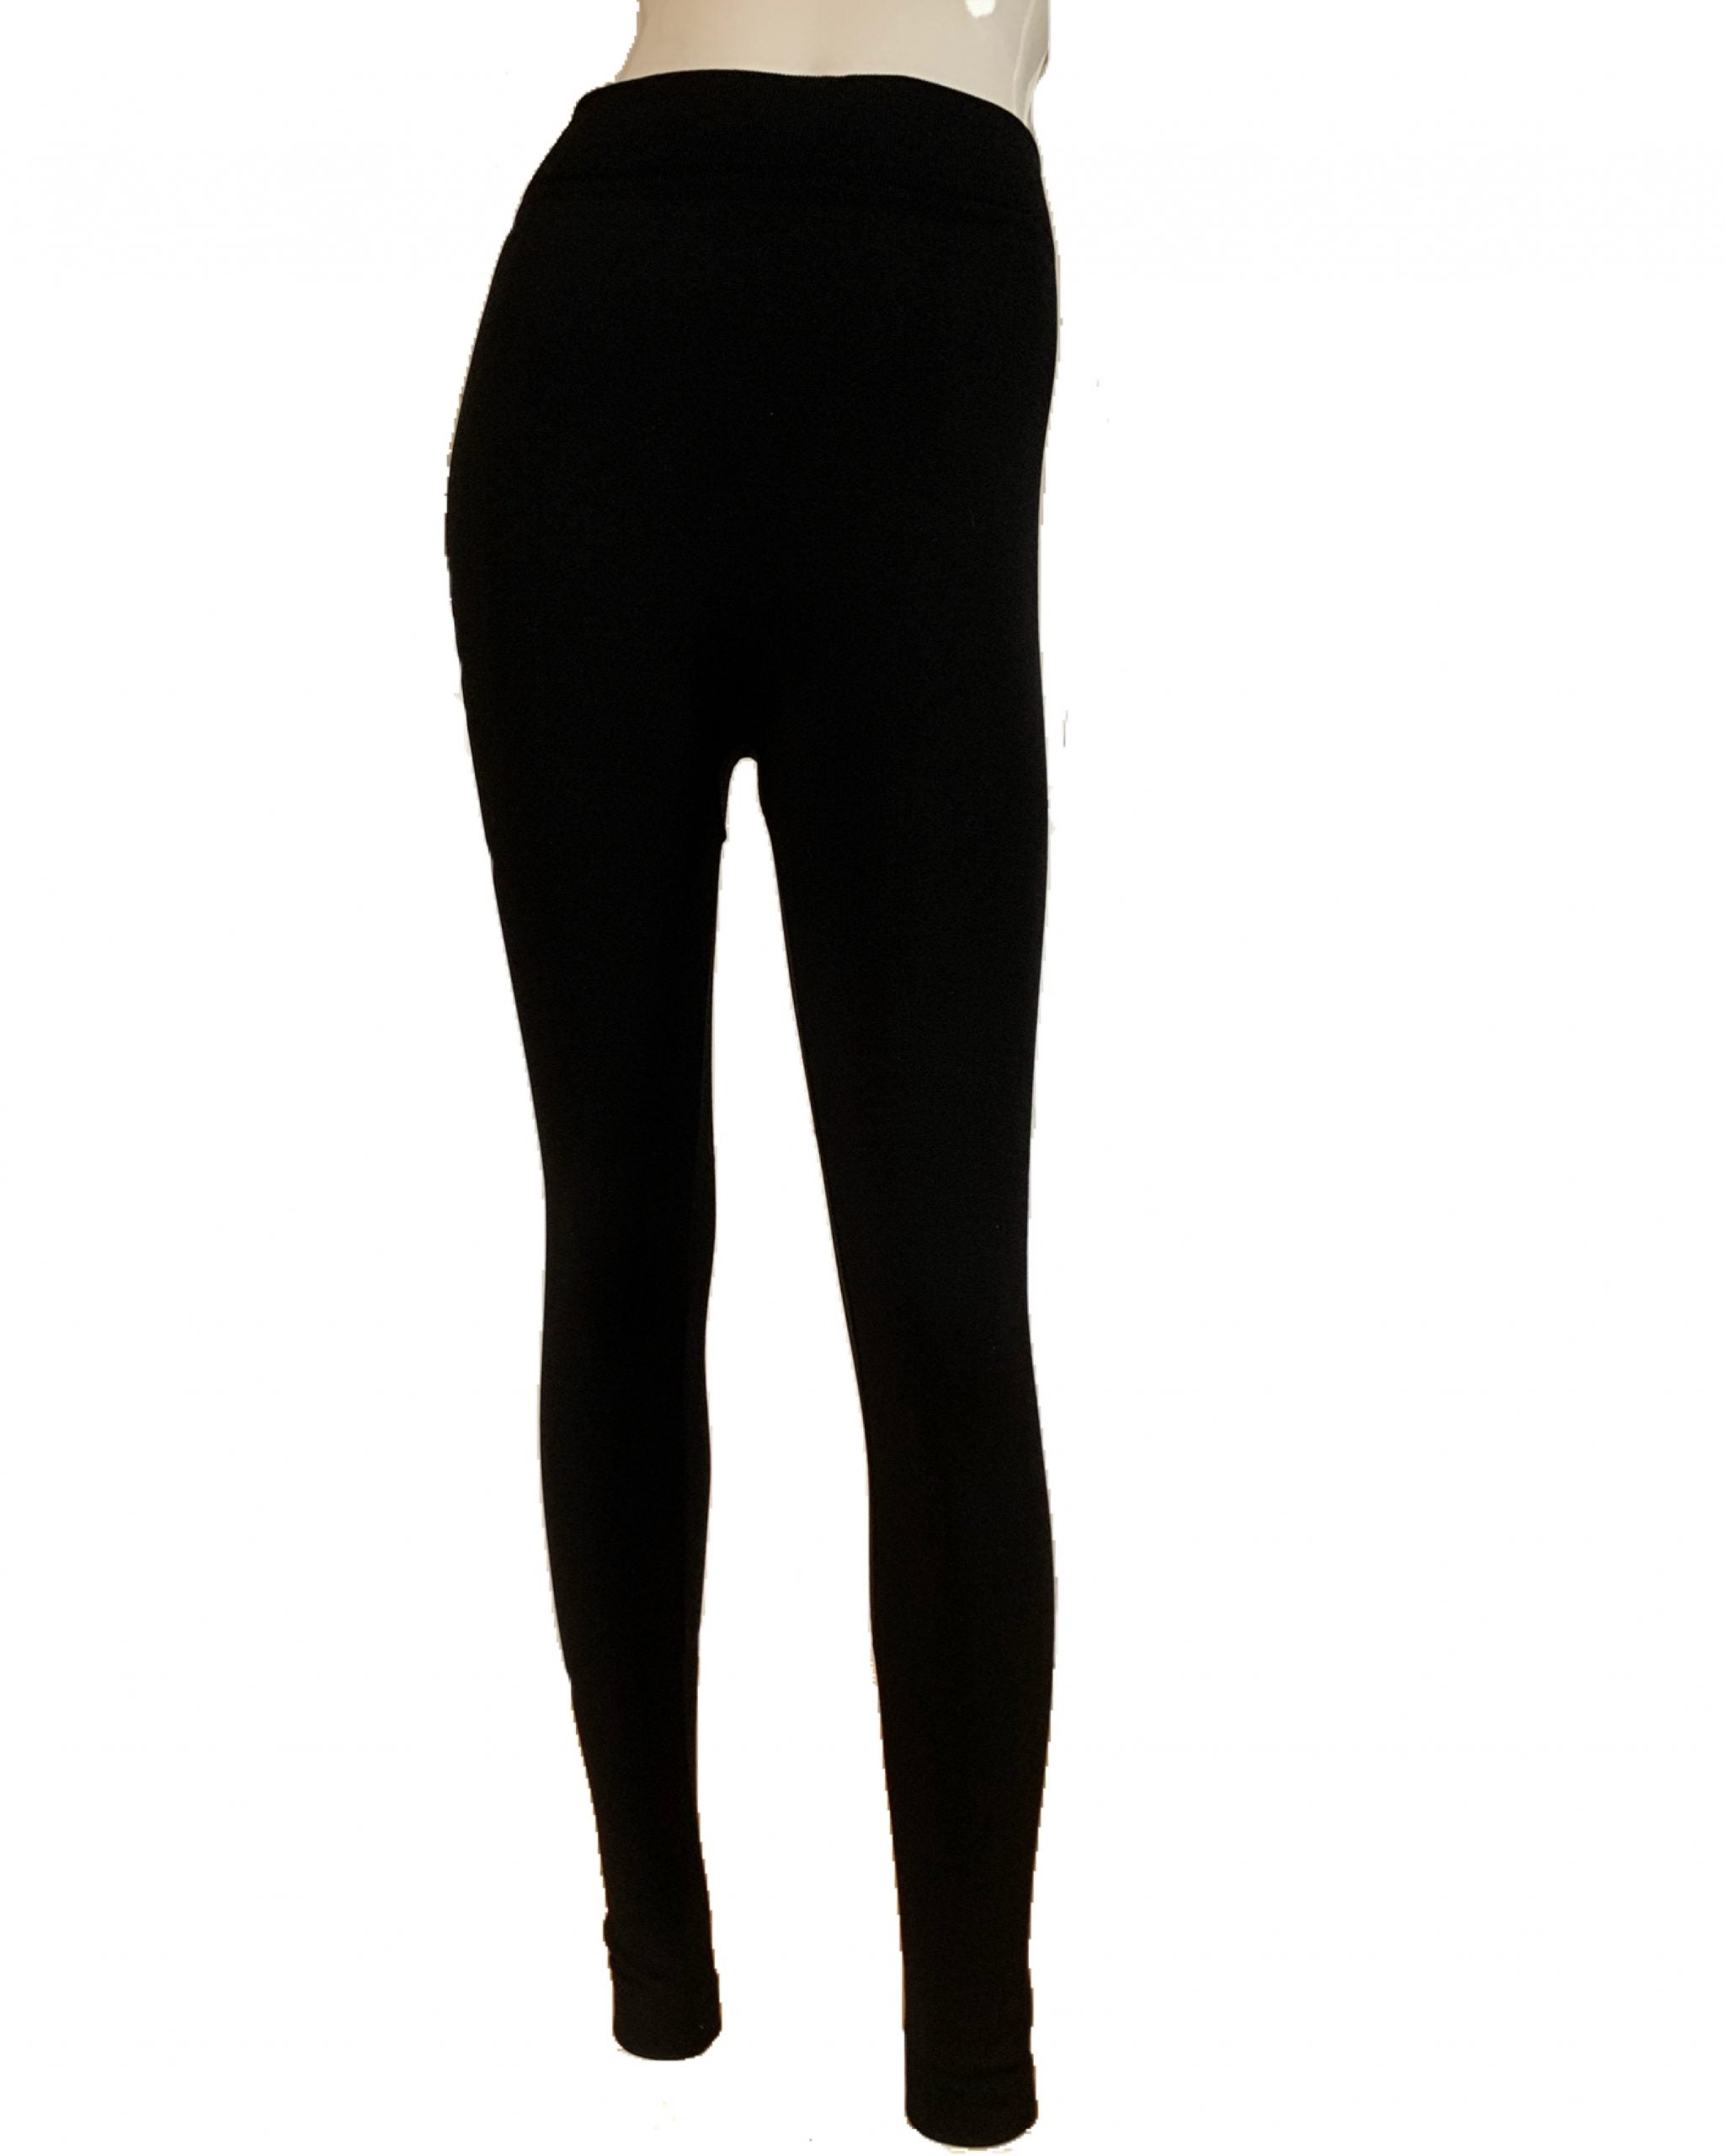 Wide Waistband Fleece Leggings $9/each